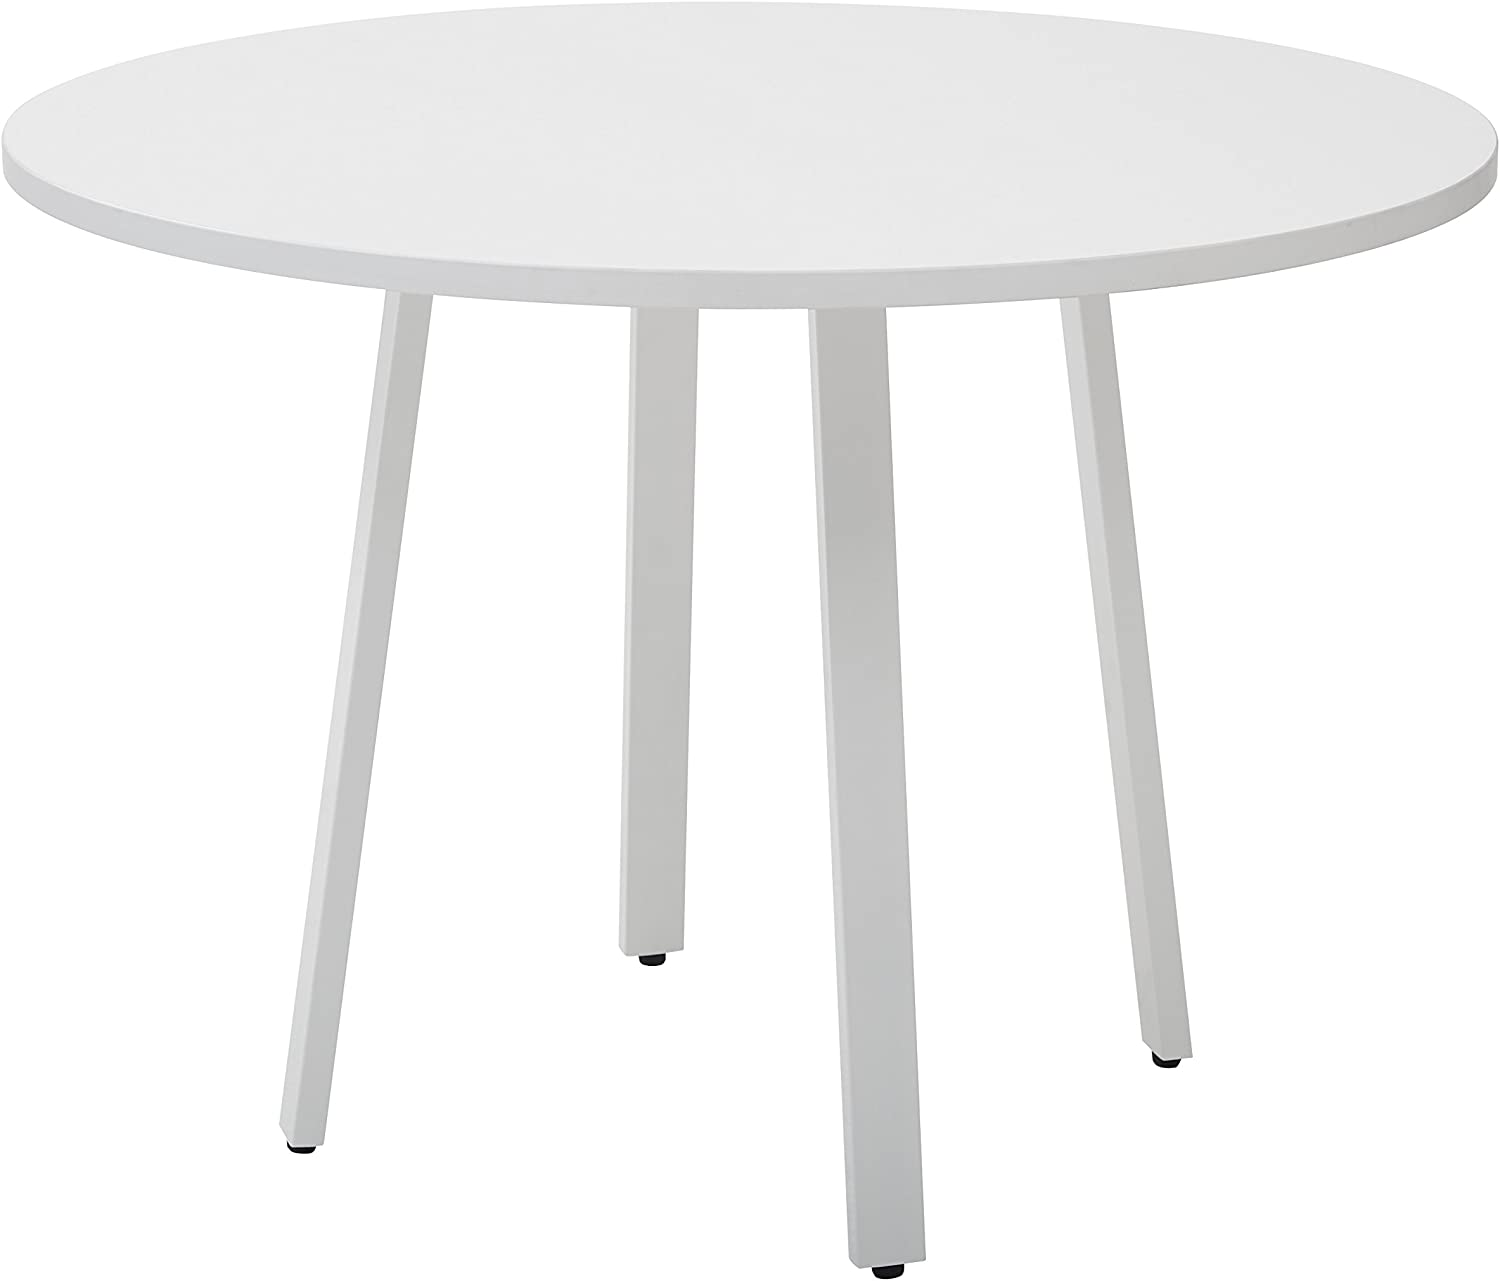 """OSP Home Furnishings Prado 42"""" Round Conference Table with White Laminate Top & White Finish Metal Legs"""